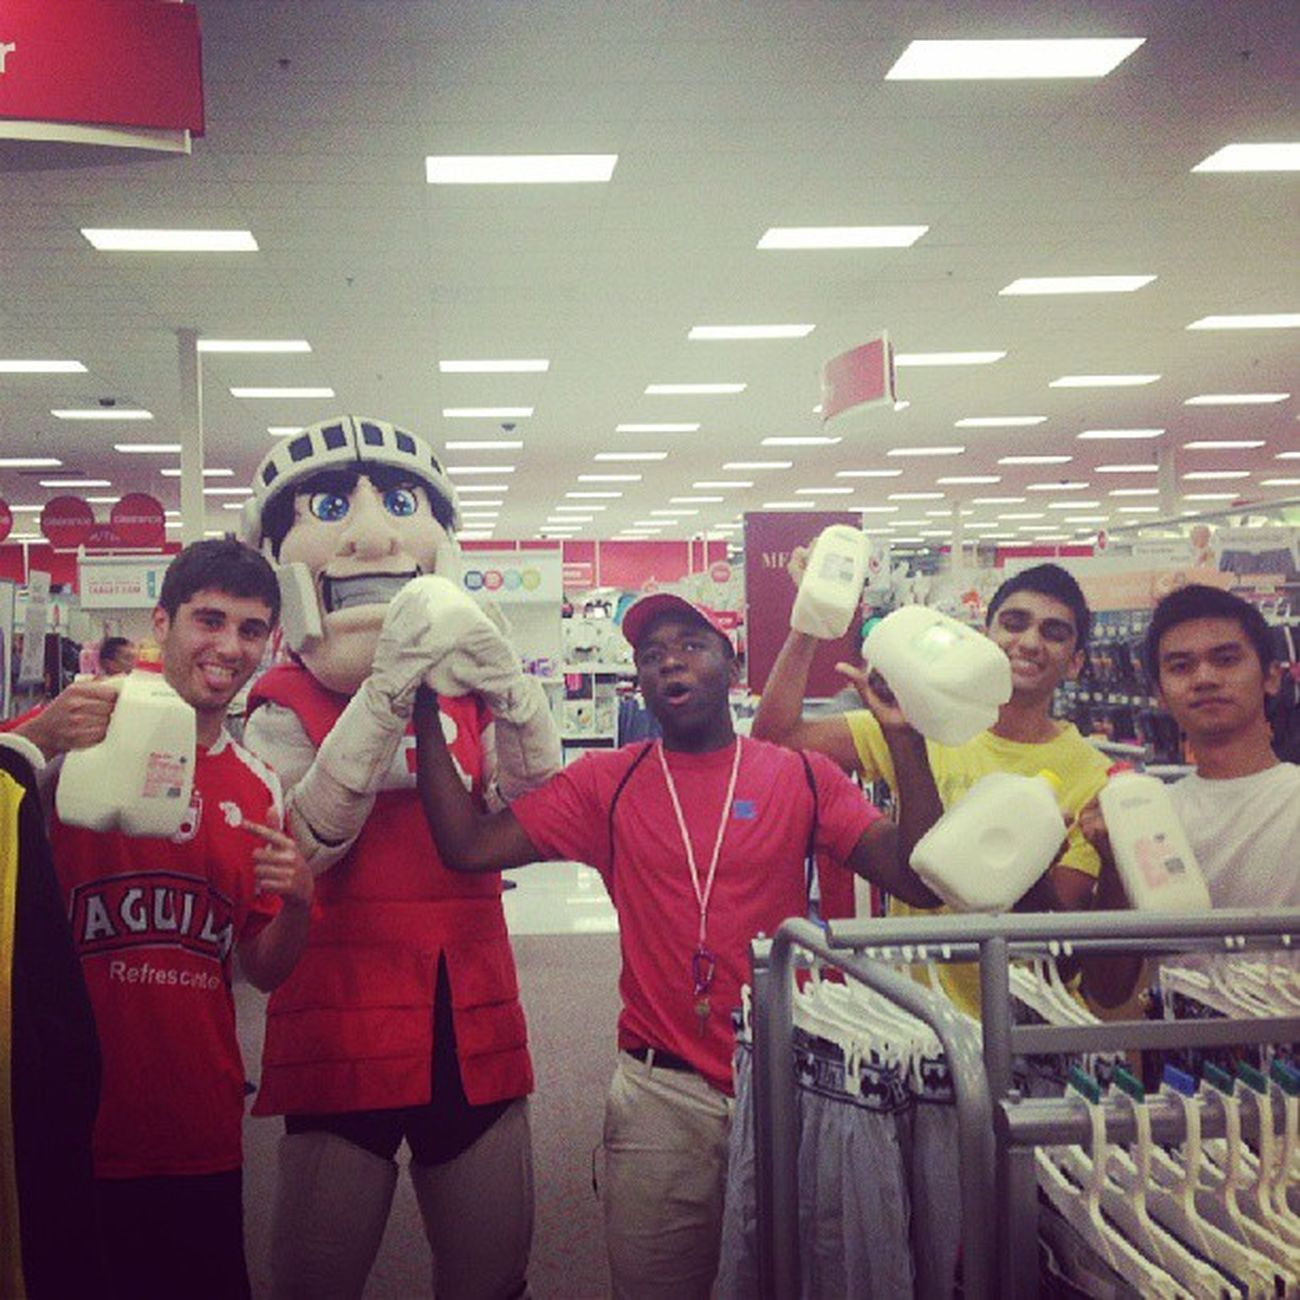 Target night before college started Rutgers Twopercent Gotmilk